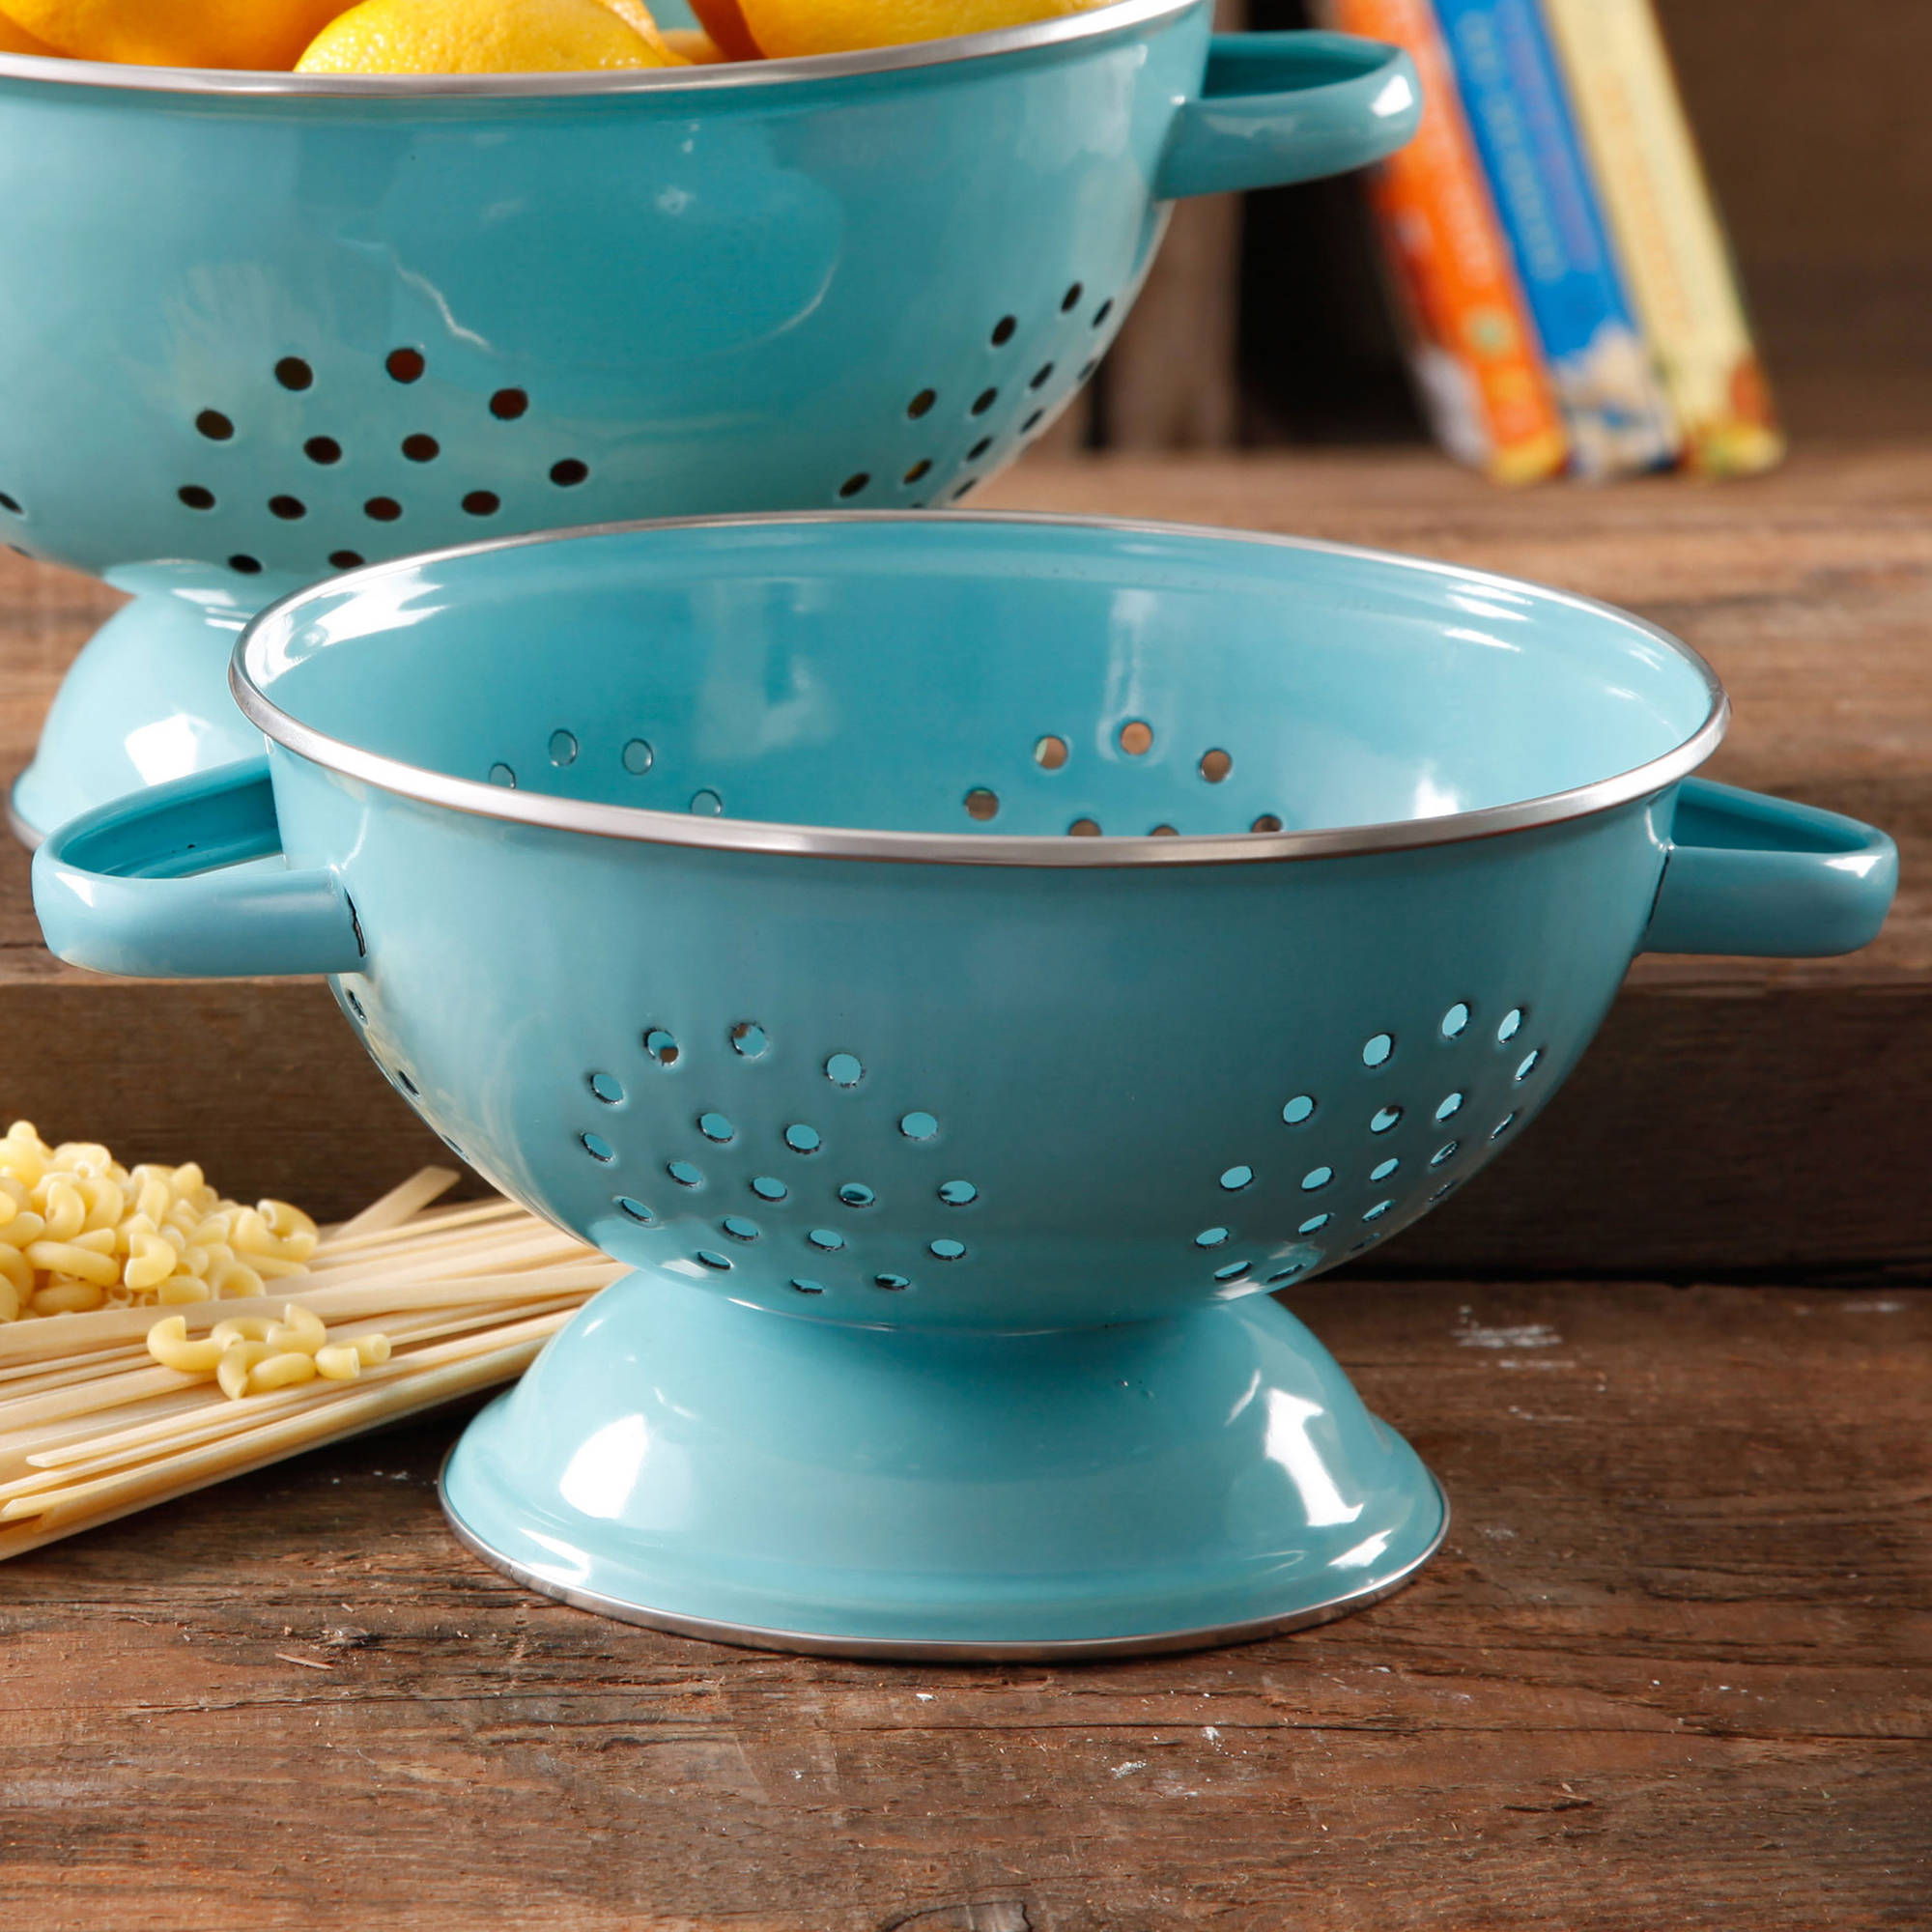 The Pioneer Woman 5-Quart Metal Turquoise Colander